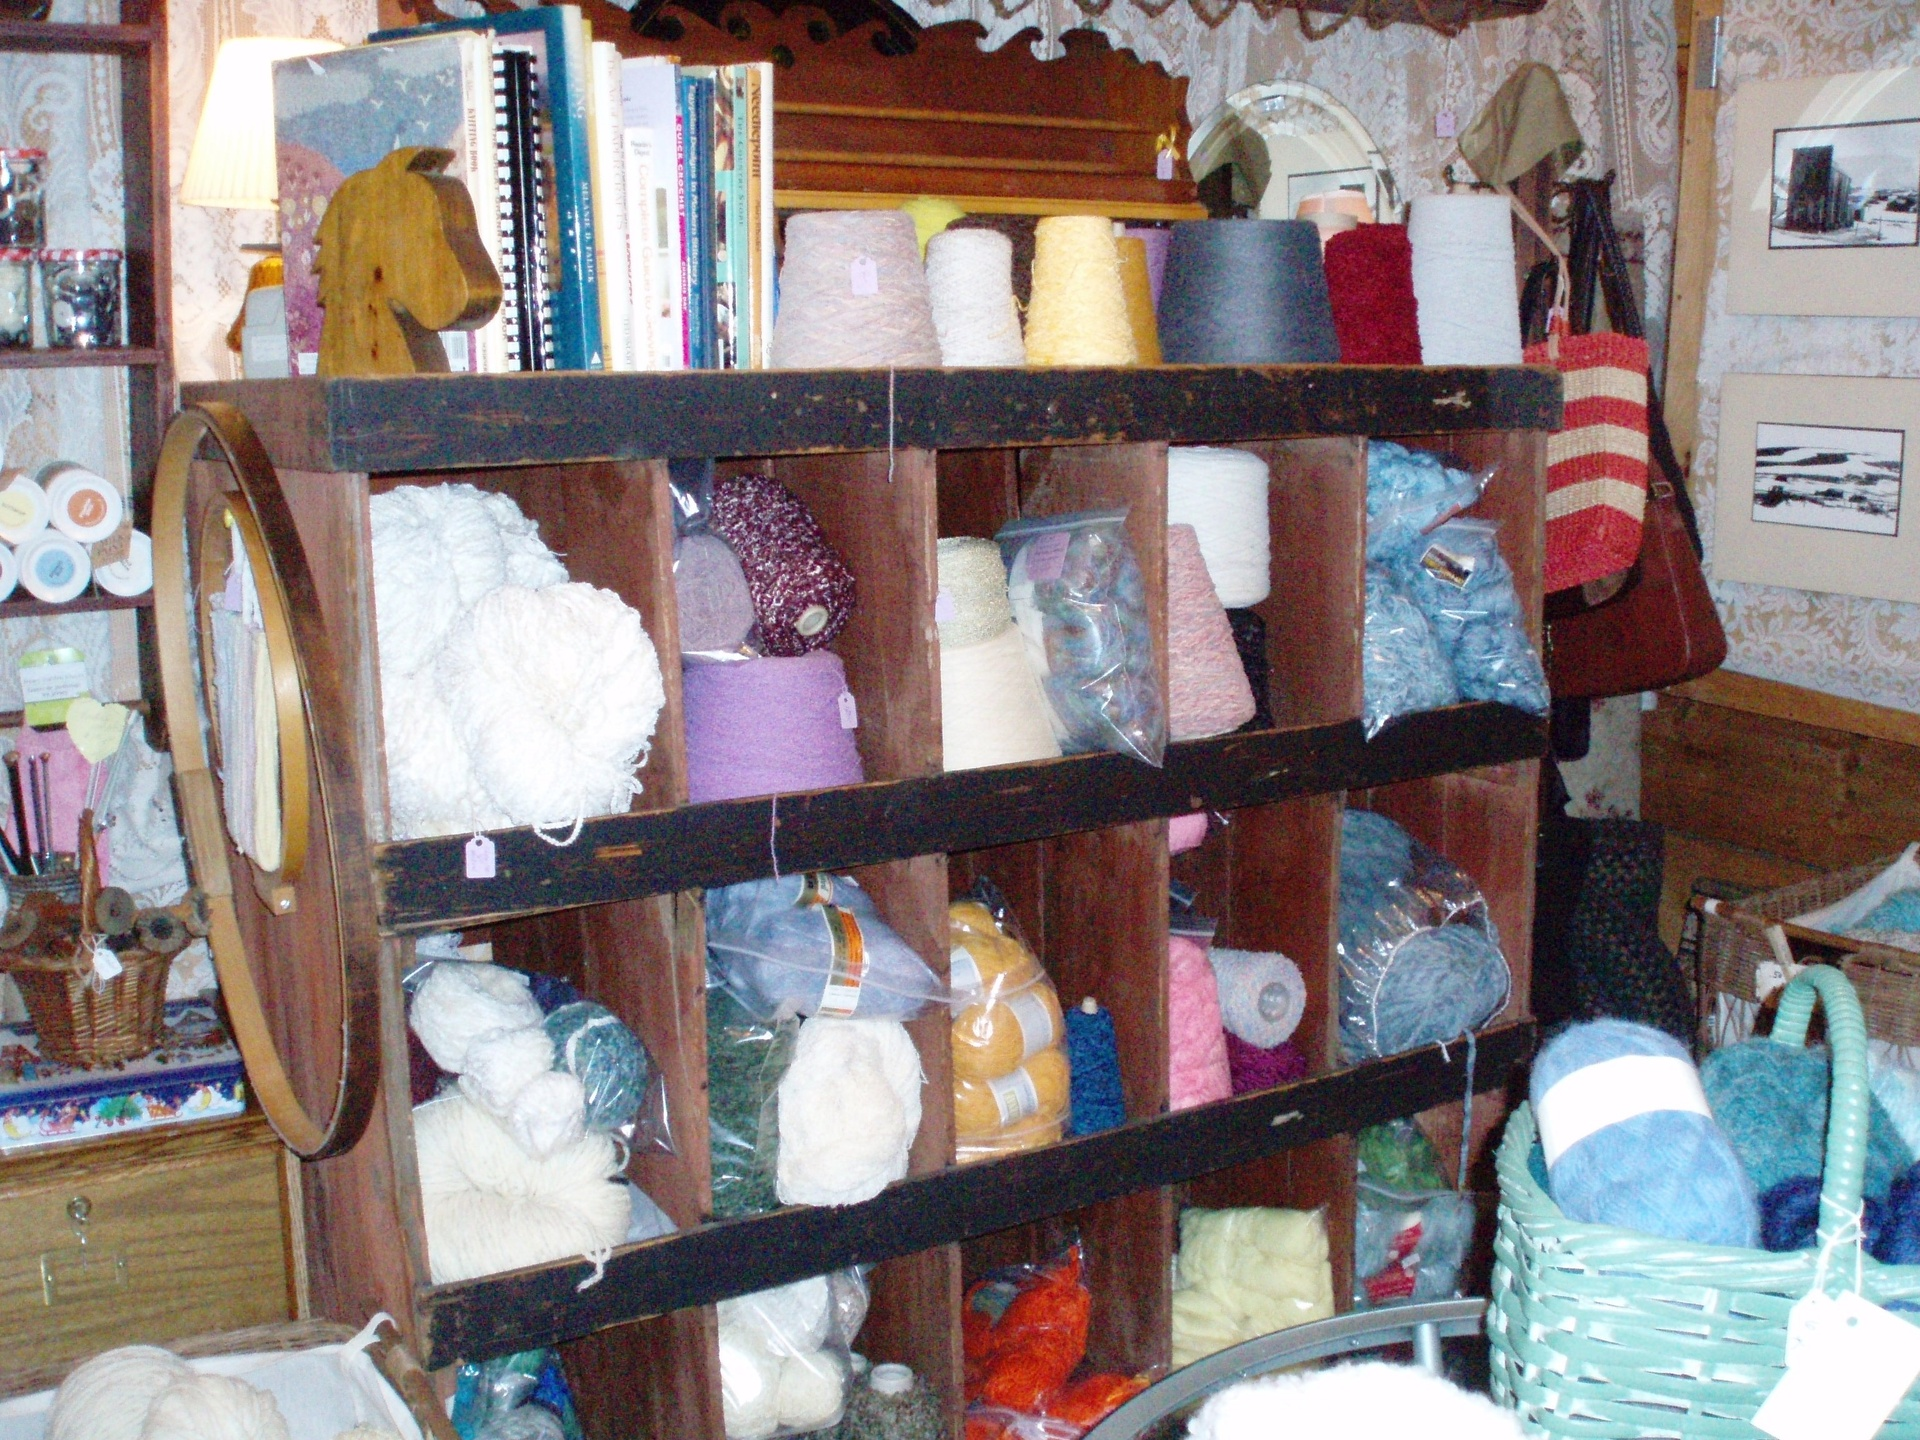 Large selection of yarn at very low prices